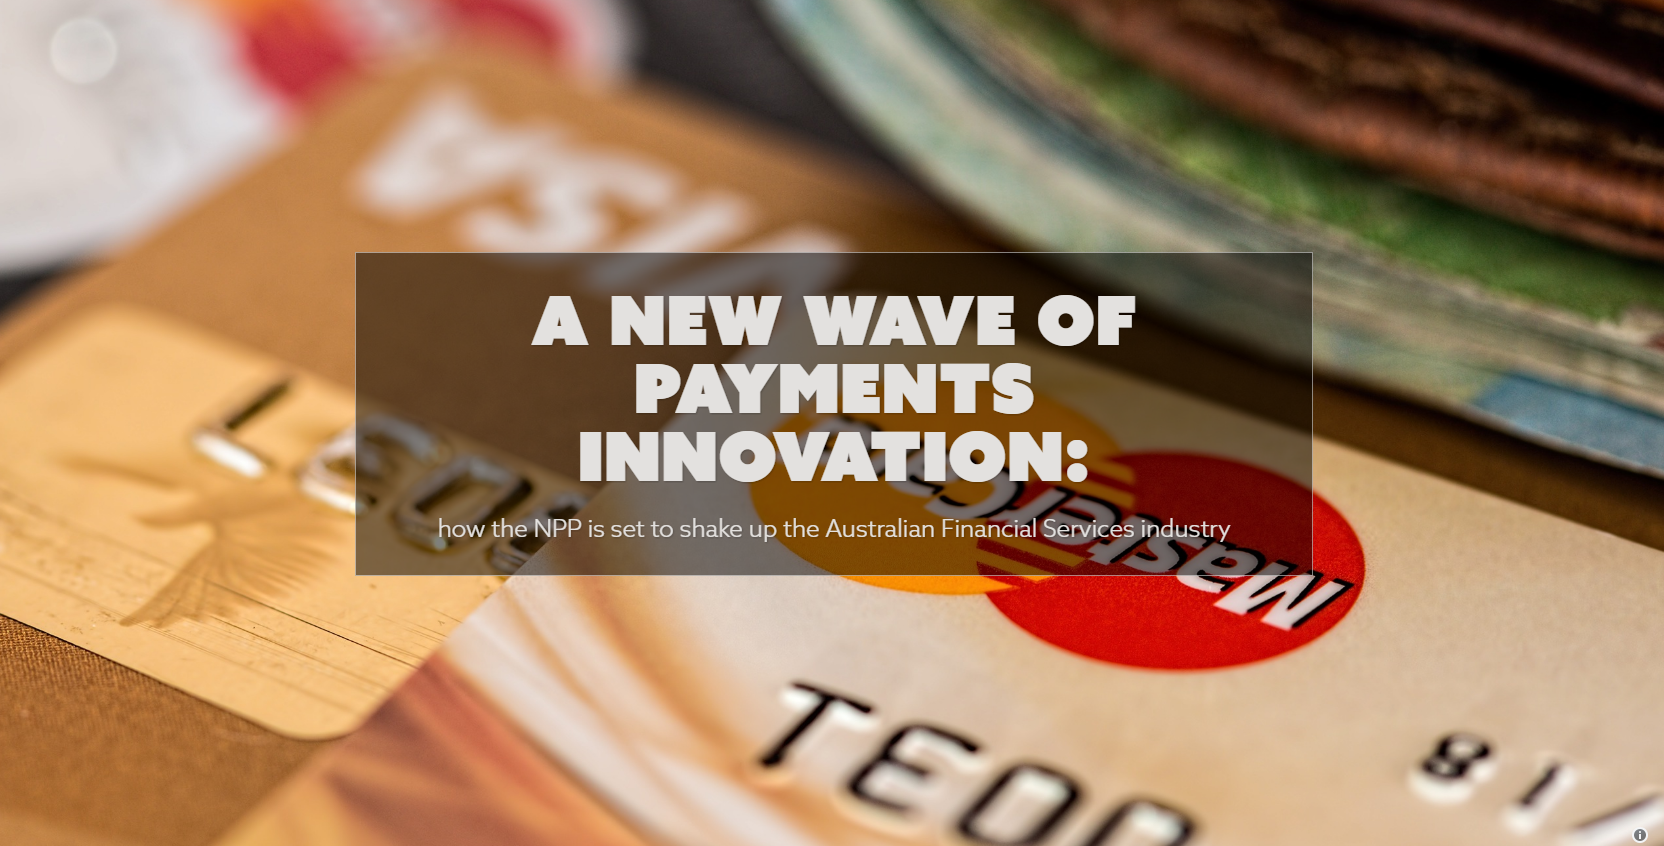 A new wave of payments innovation: how the NPP is set to shake up the Australian Financial Services industry